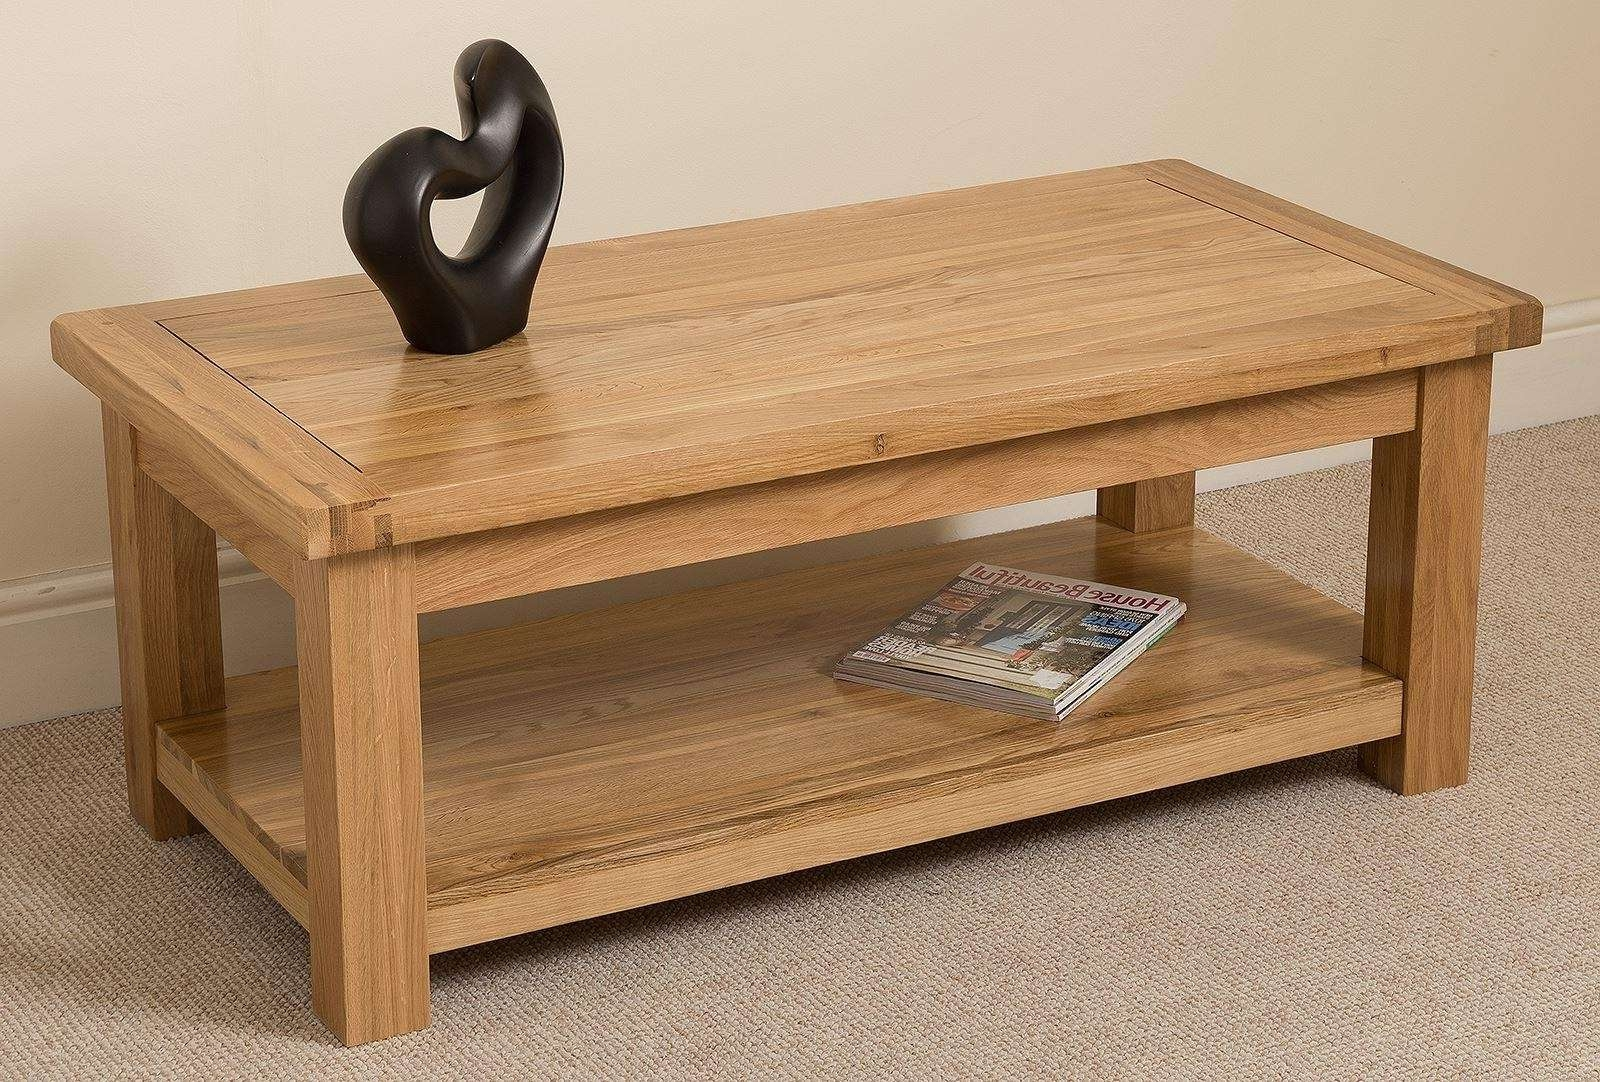 What Kind Of Floor Tiles Combined With An Oak Coffee Table? — The Within Most Up To Date Oak Furniture Coffee Tables (View 17 of 20)